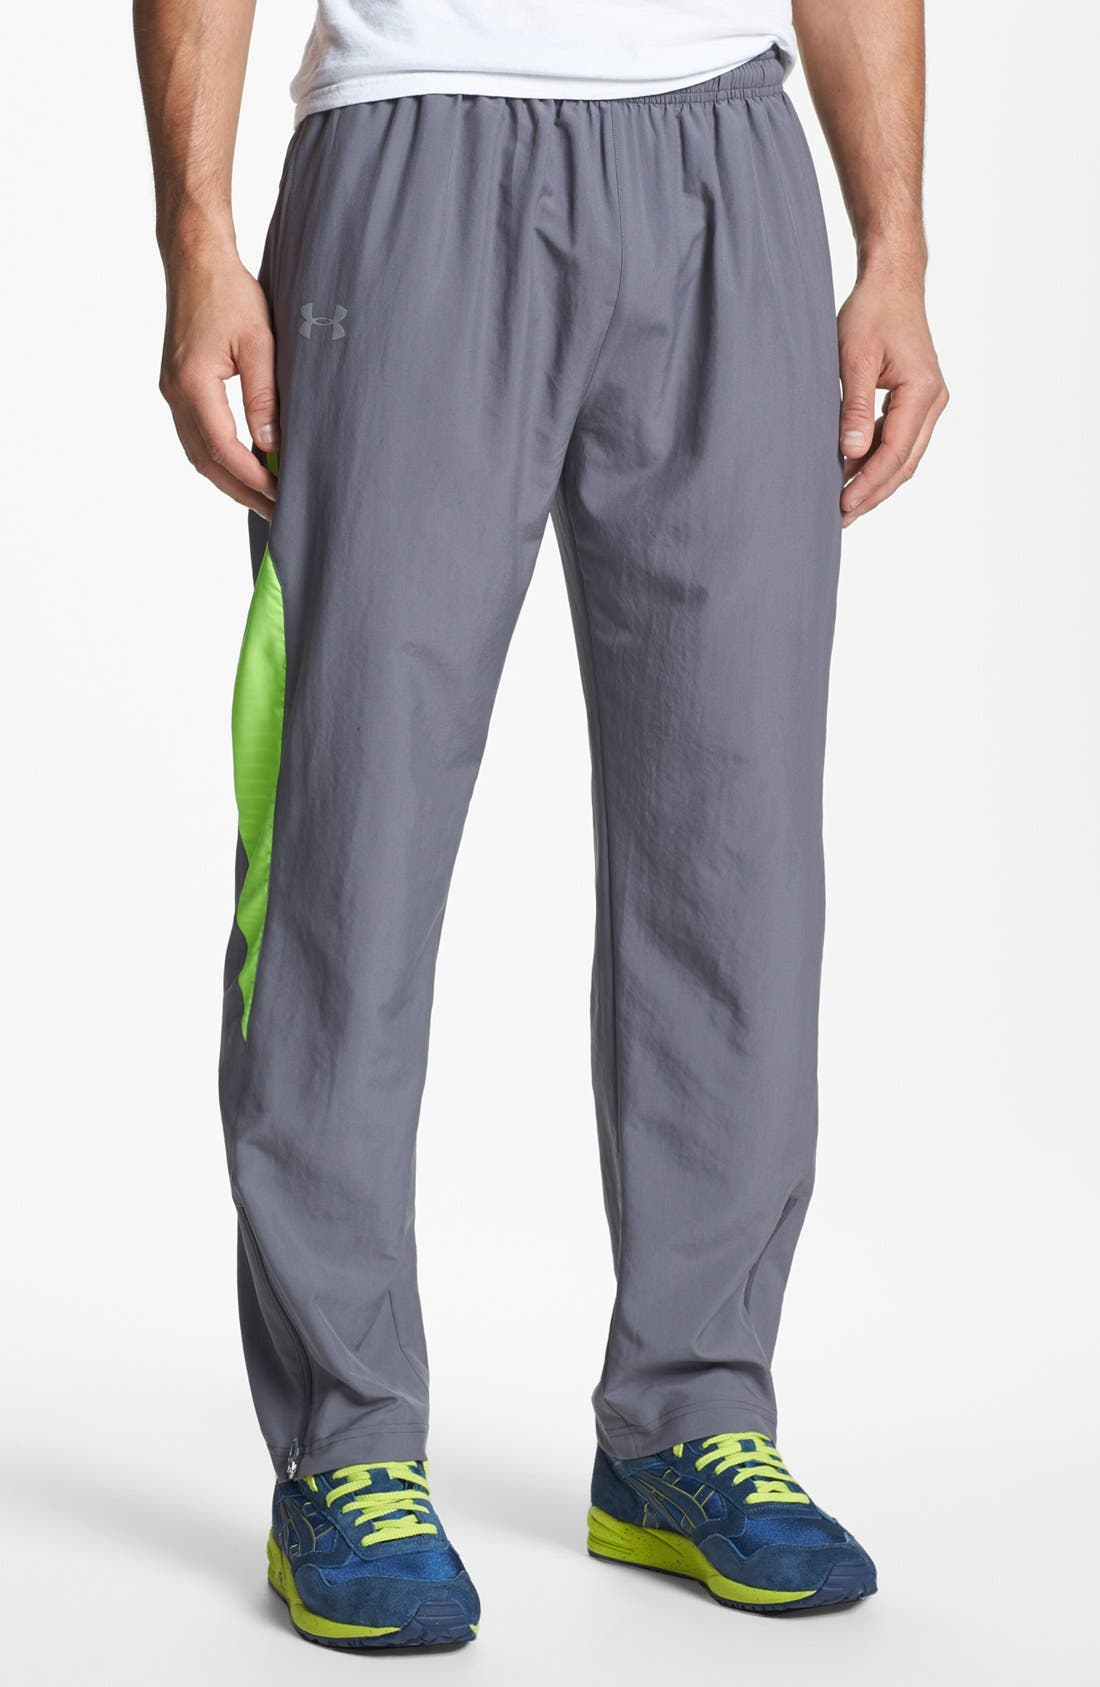 Alternate Image 1 Selected - Under Armour 'Imminent' Woven Running Pants